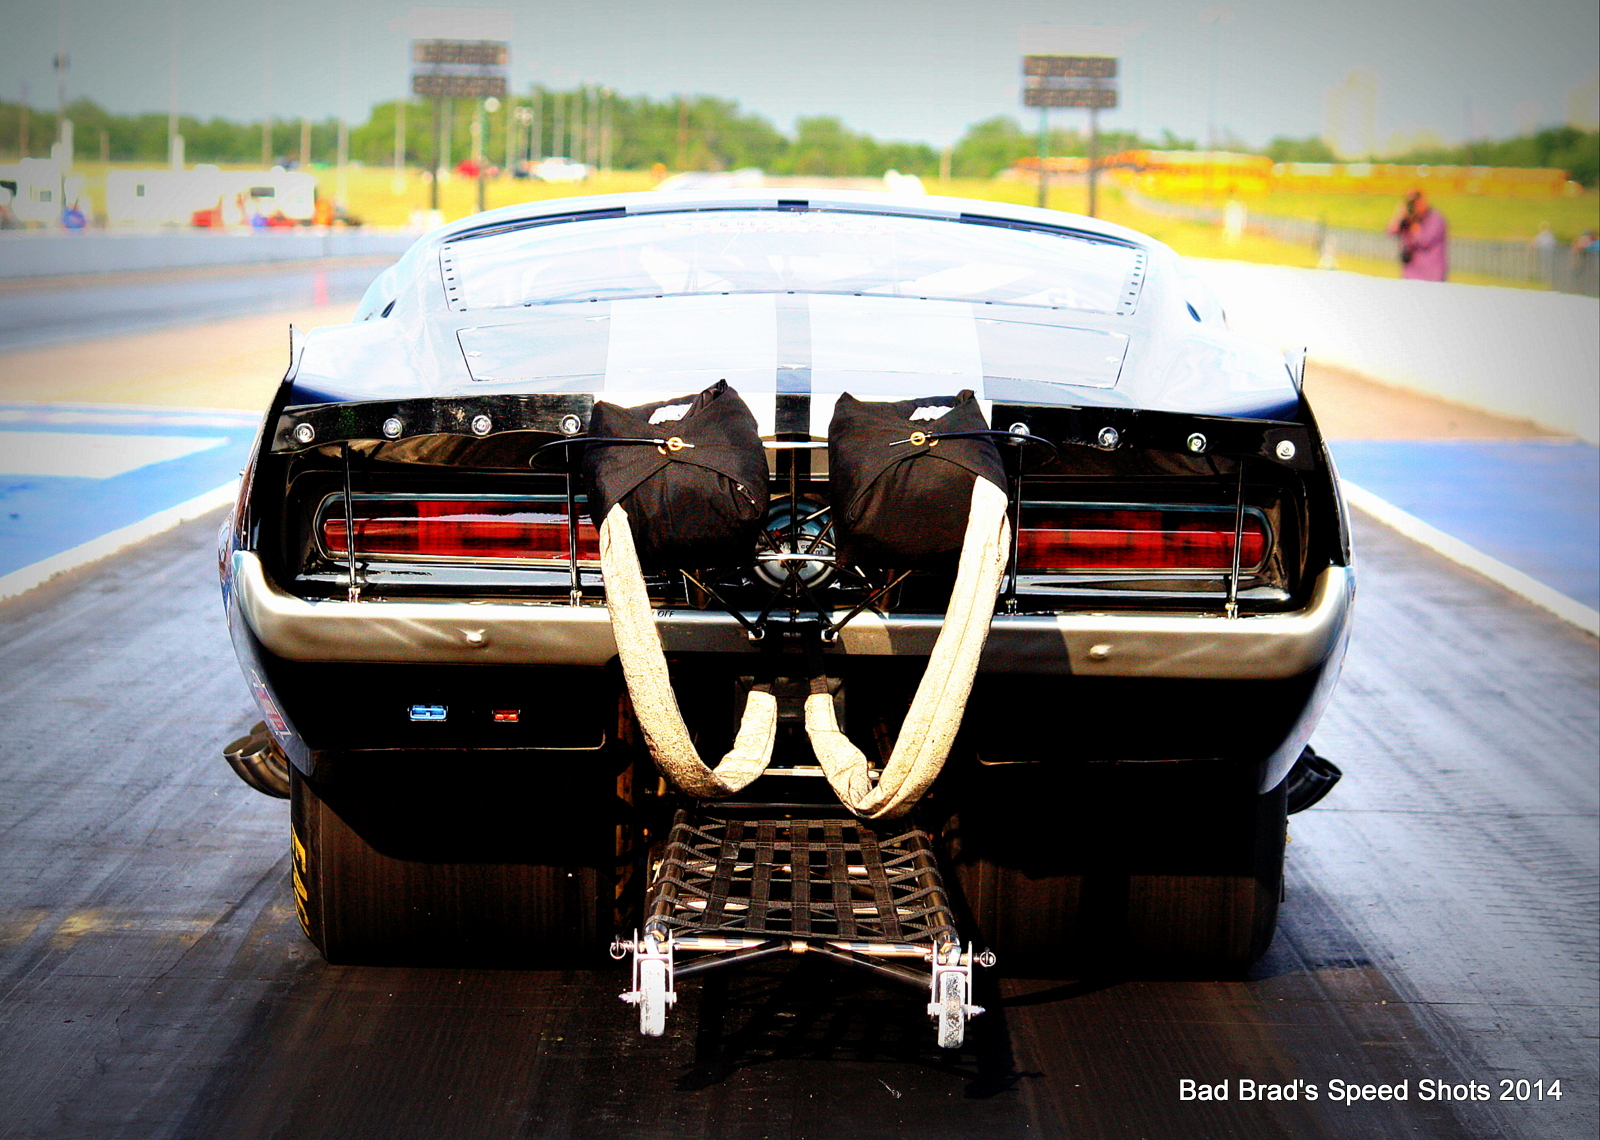 2014 Throwdown In T-Town – More Gassers, Pro Mods, Motorcycles, Action Galore